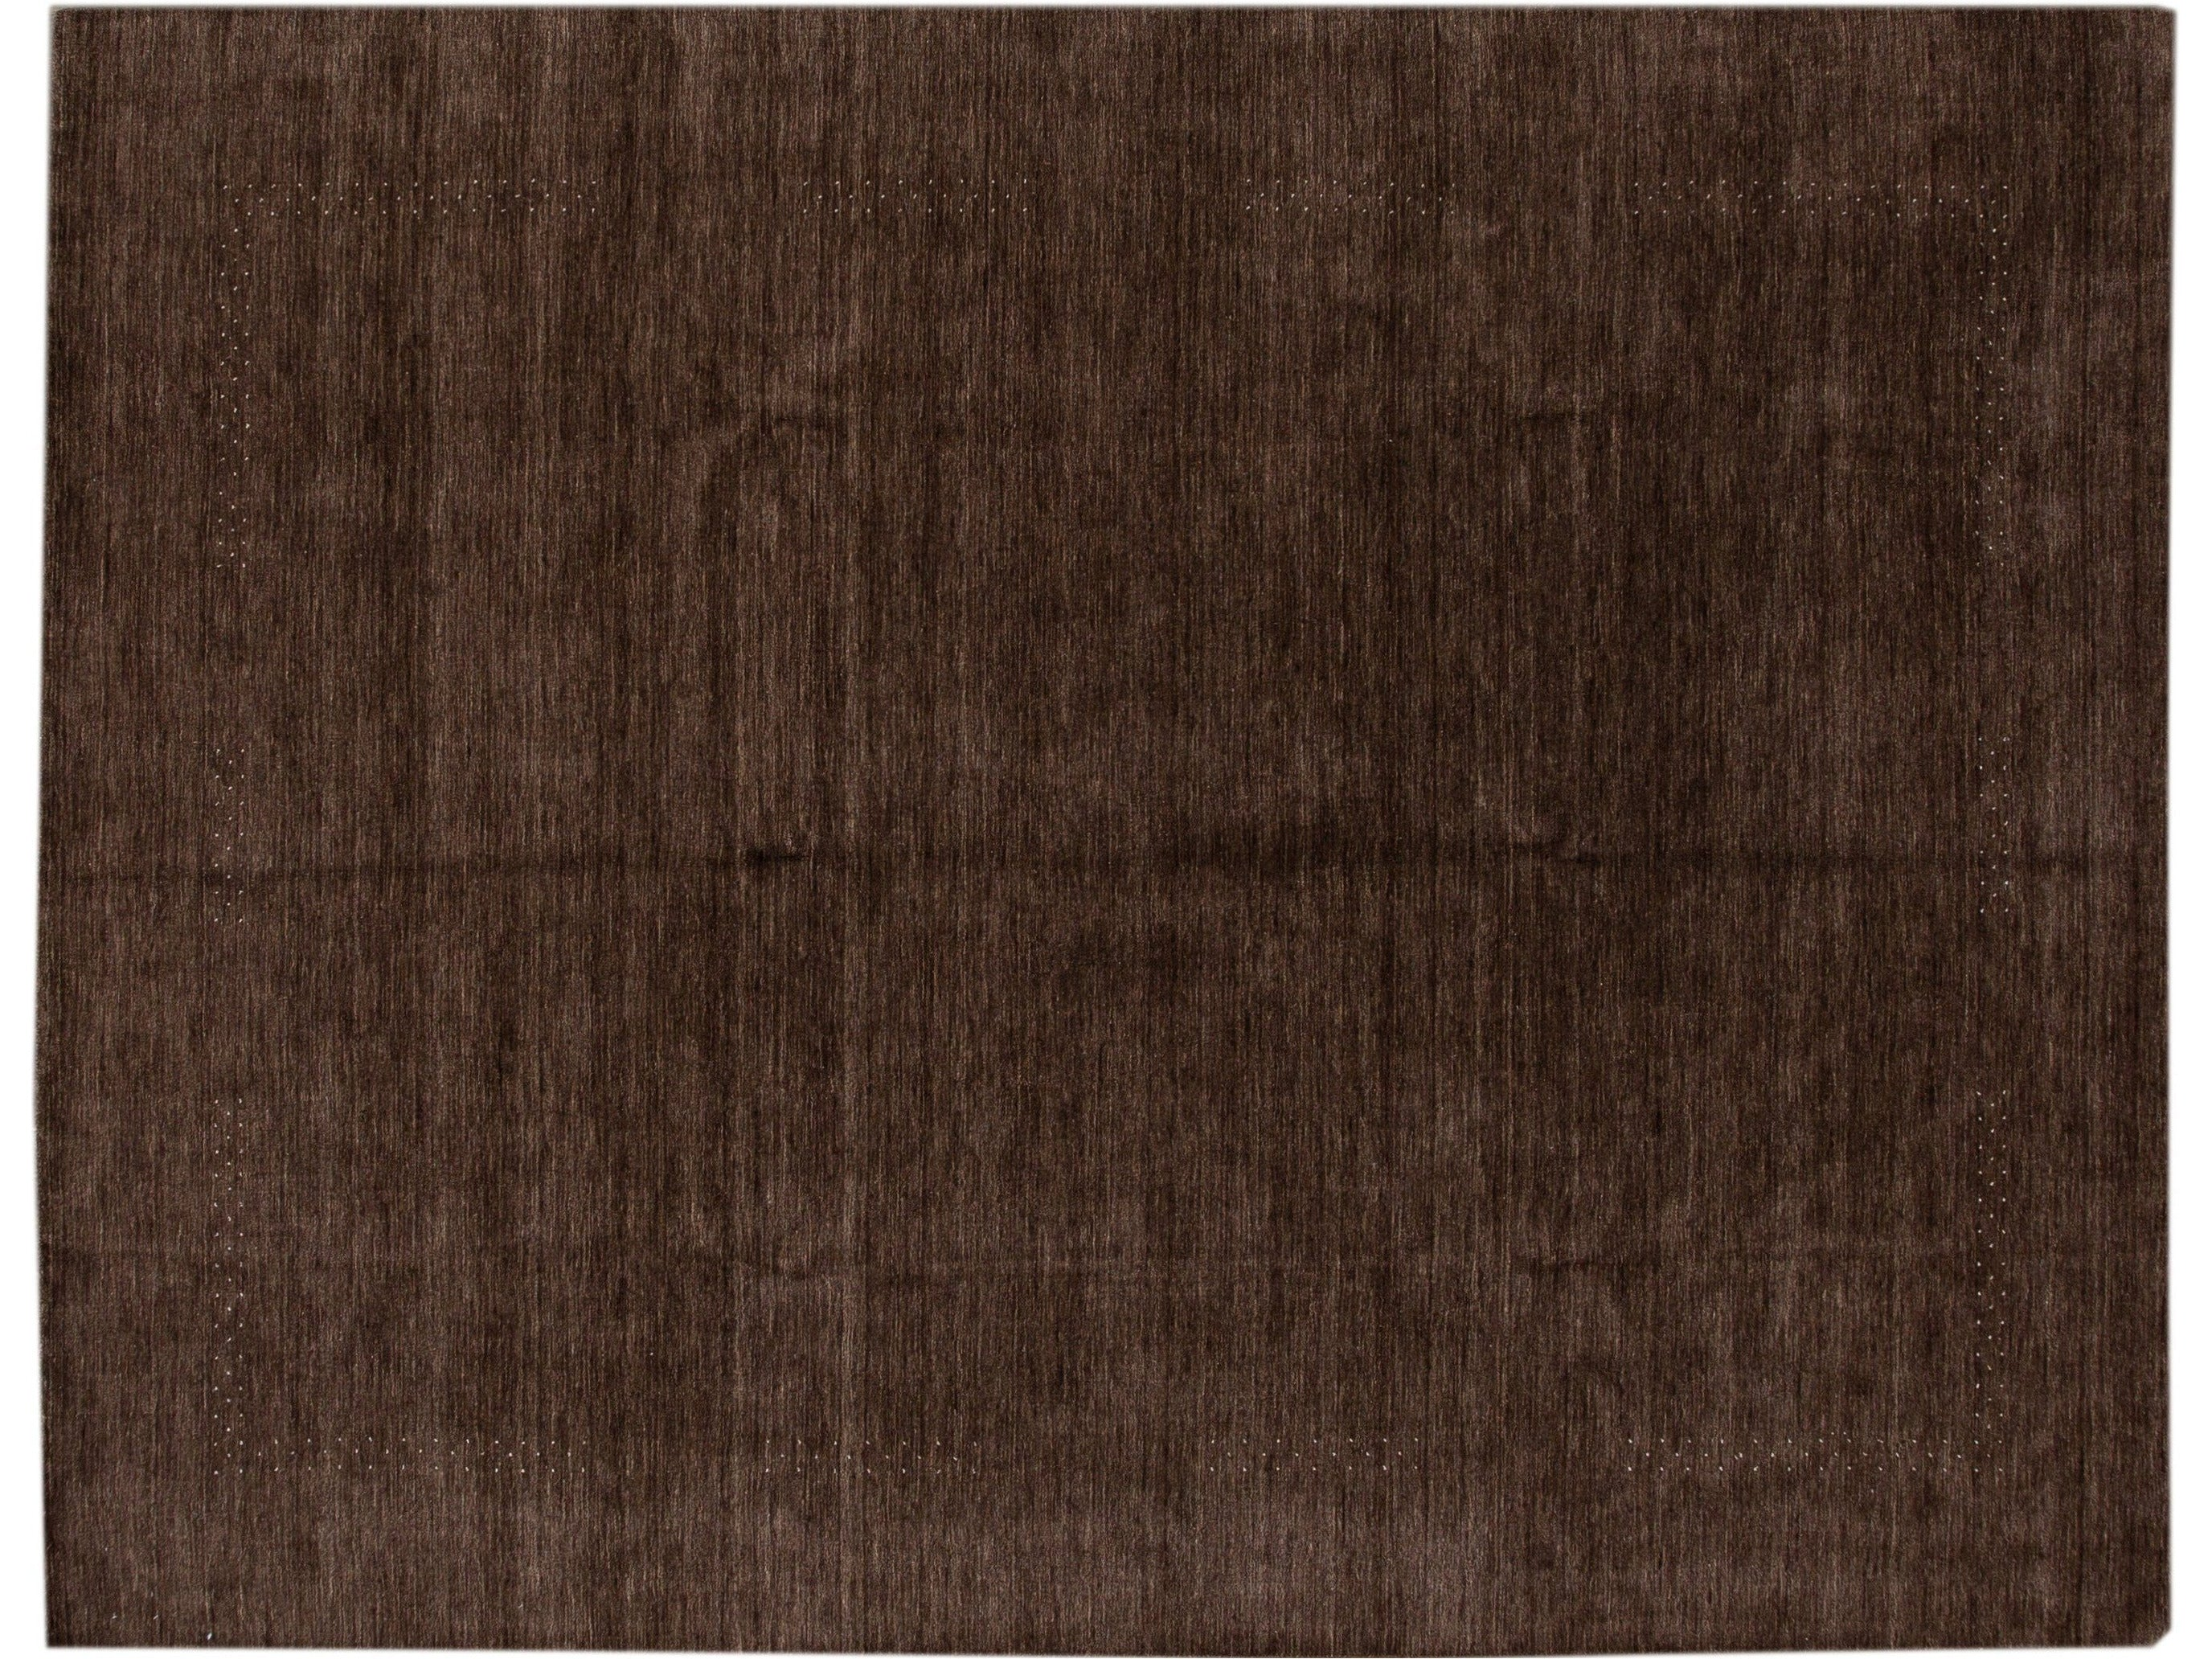 Modern Gabbeh Style Handloom Brown Geometric Wool Rug